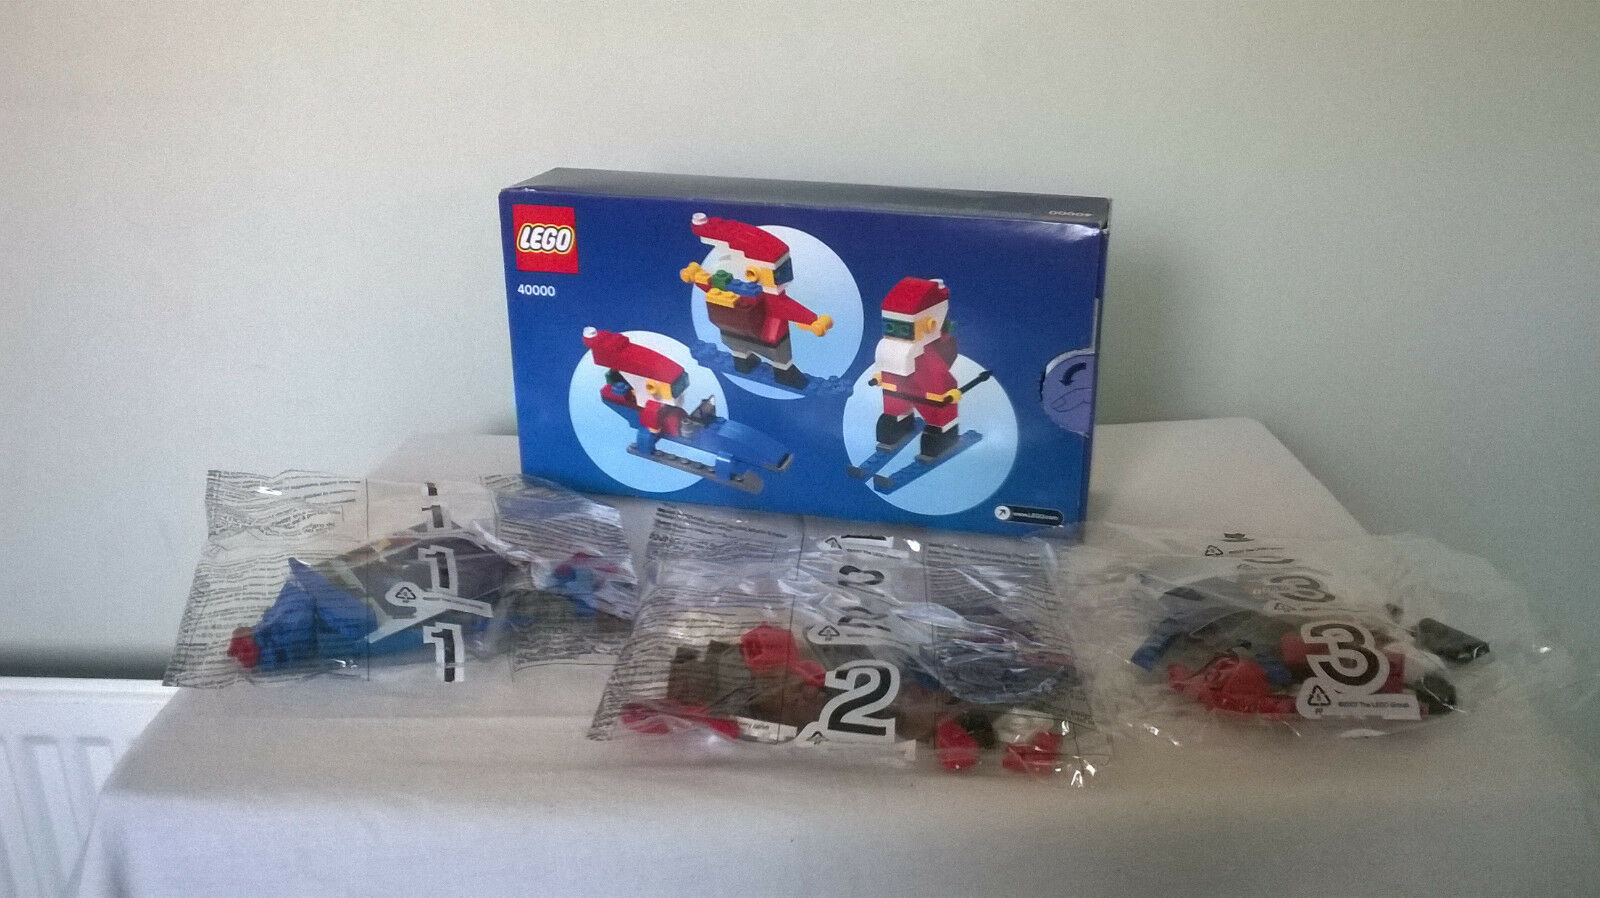 LEGO 40000 COOL SANTA SET 6+ 152 PIECES PIECES PIECES c39c9b